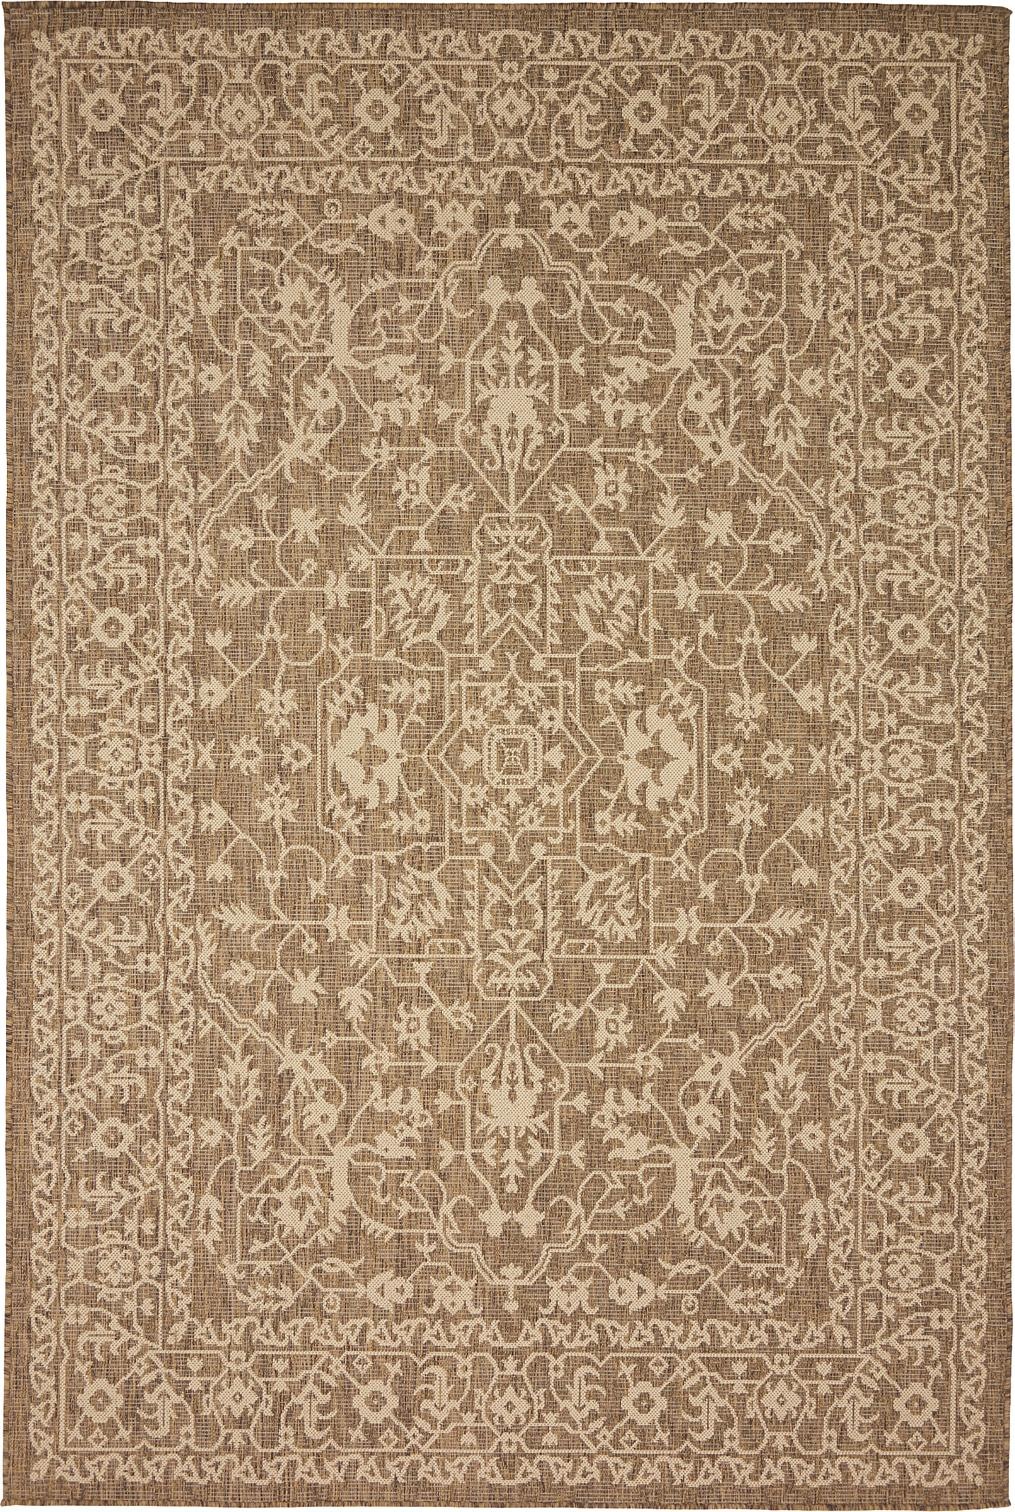 Brown 6 X 9 Outdoor Botanical Rug Area Rugs Handknotted Com